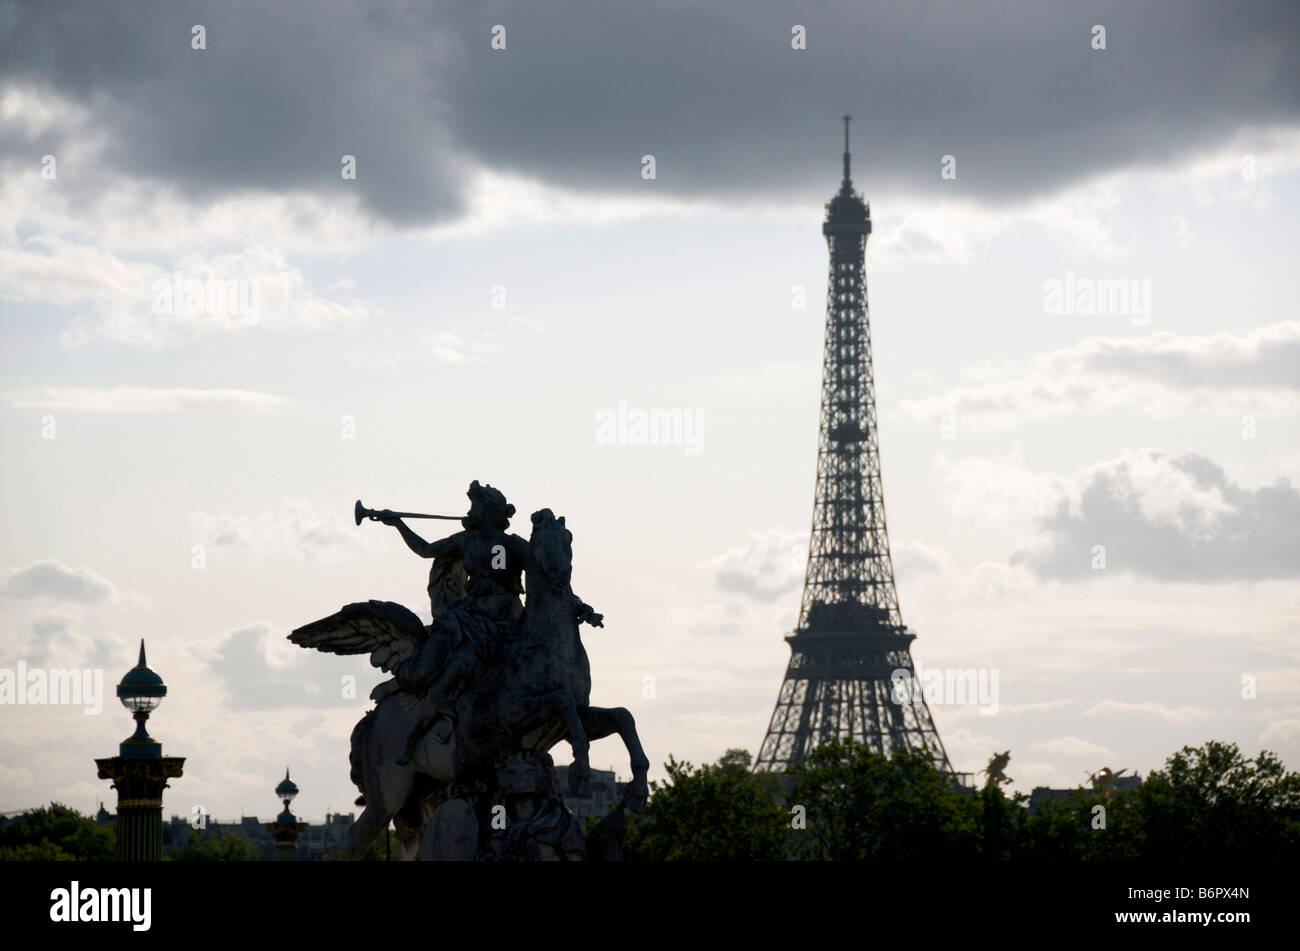 Silhouette of Paris, Eiffel Tower, France, Europe - Stock Image